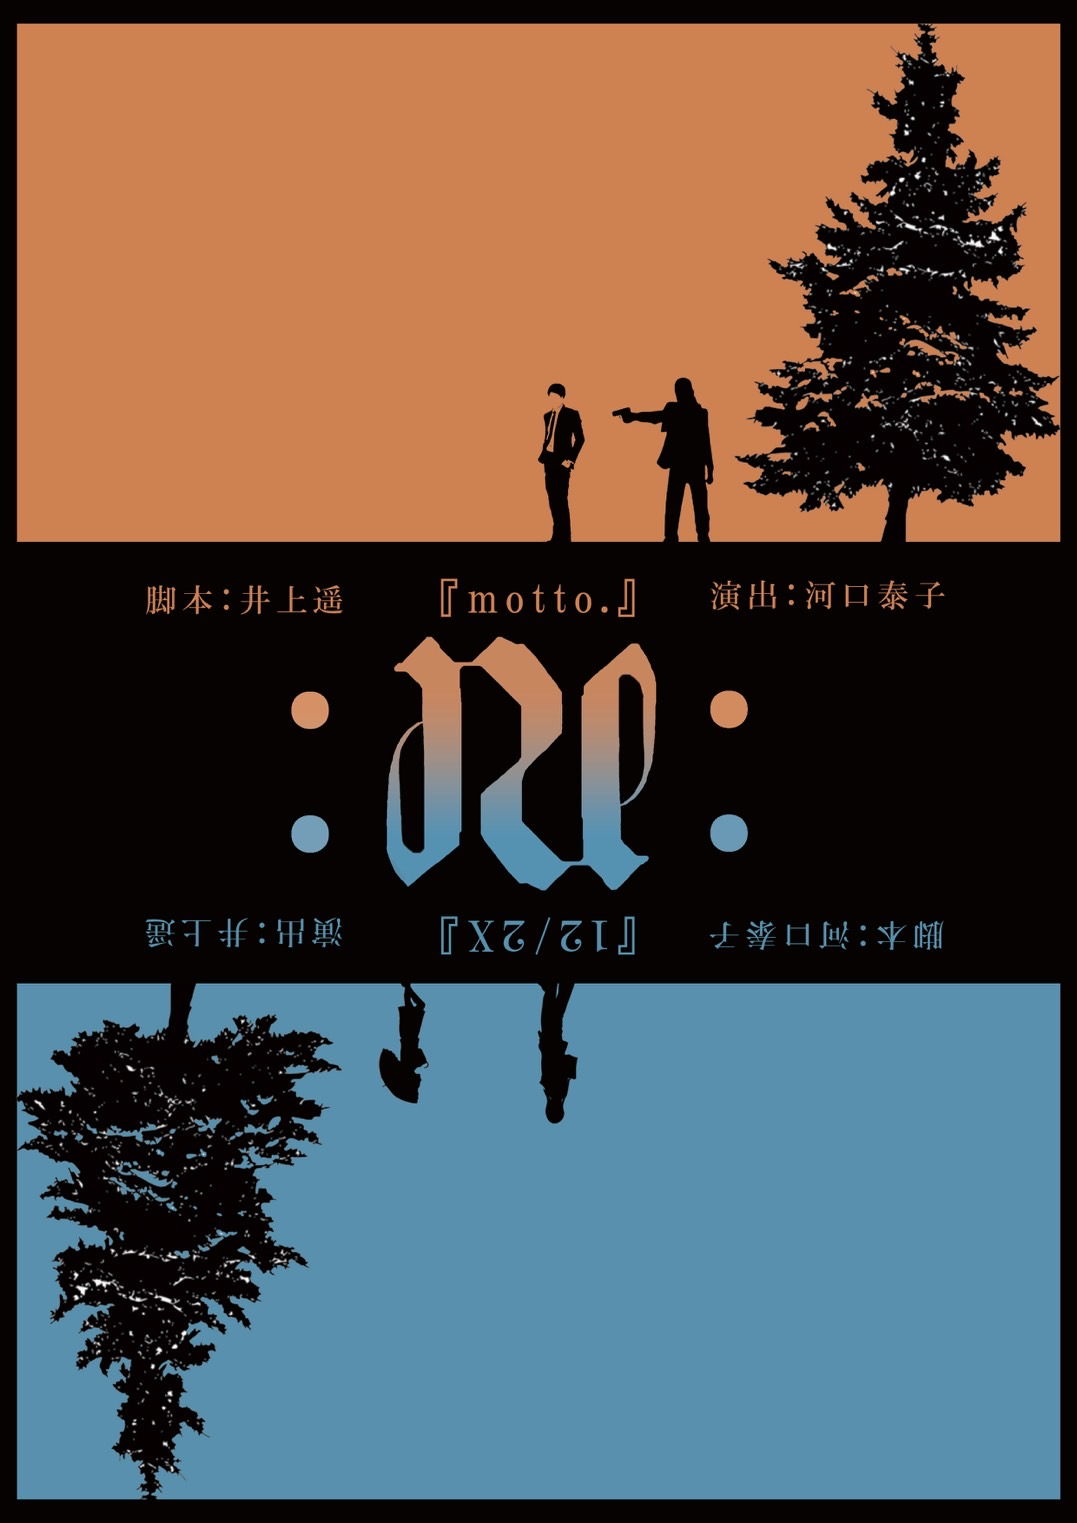 『Re:』<br> motto.<br>脚本:井上遥 演出:河口泰子 <br> 12/2X <br> 脚本:河口泰子 演出:井上遥<br>2019.12.14~2019.12.15